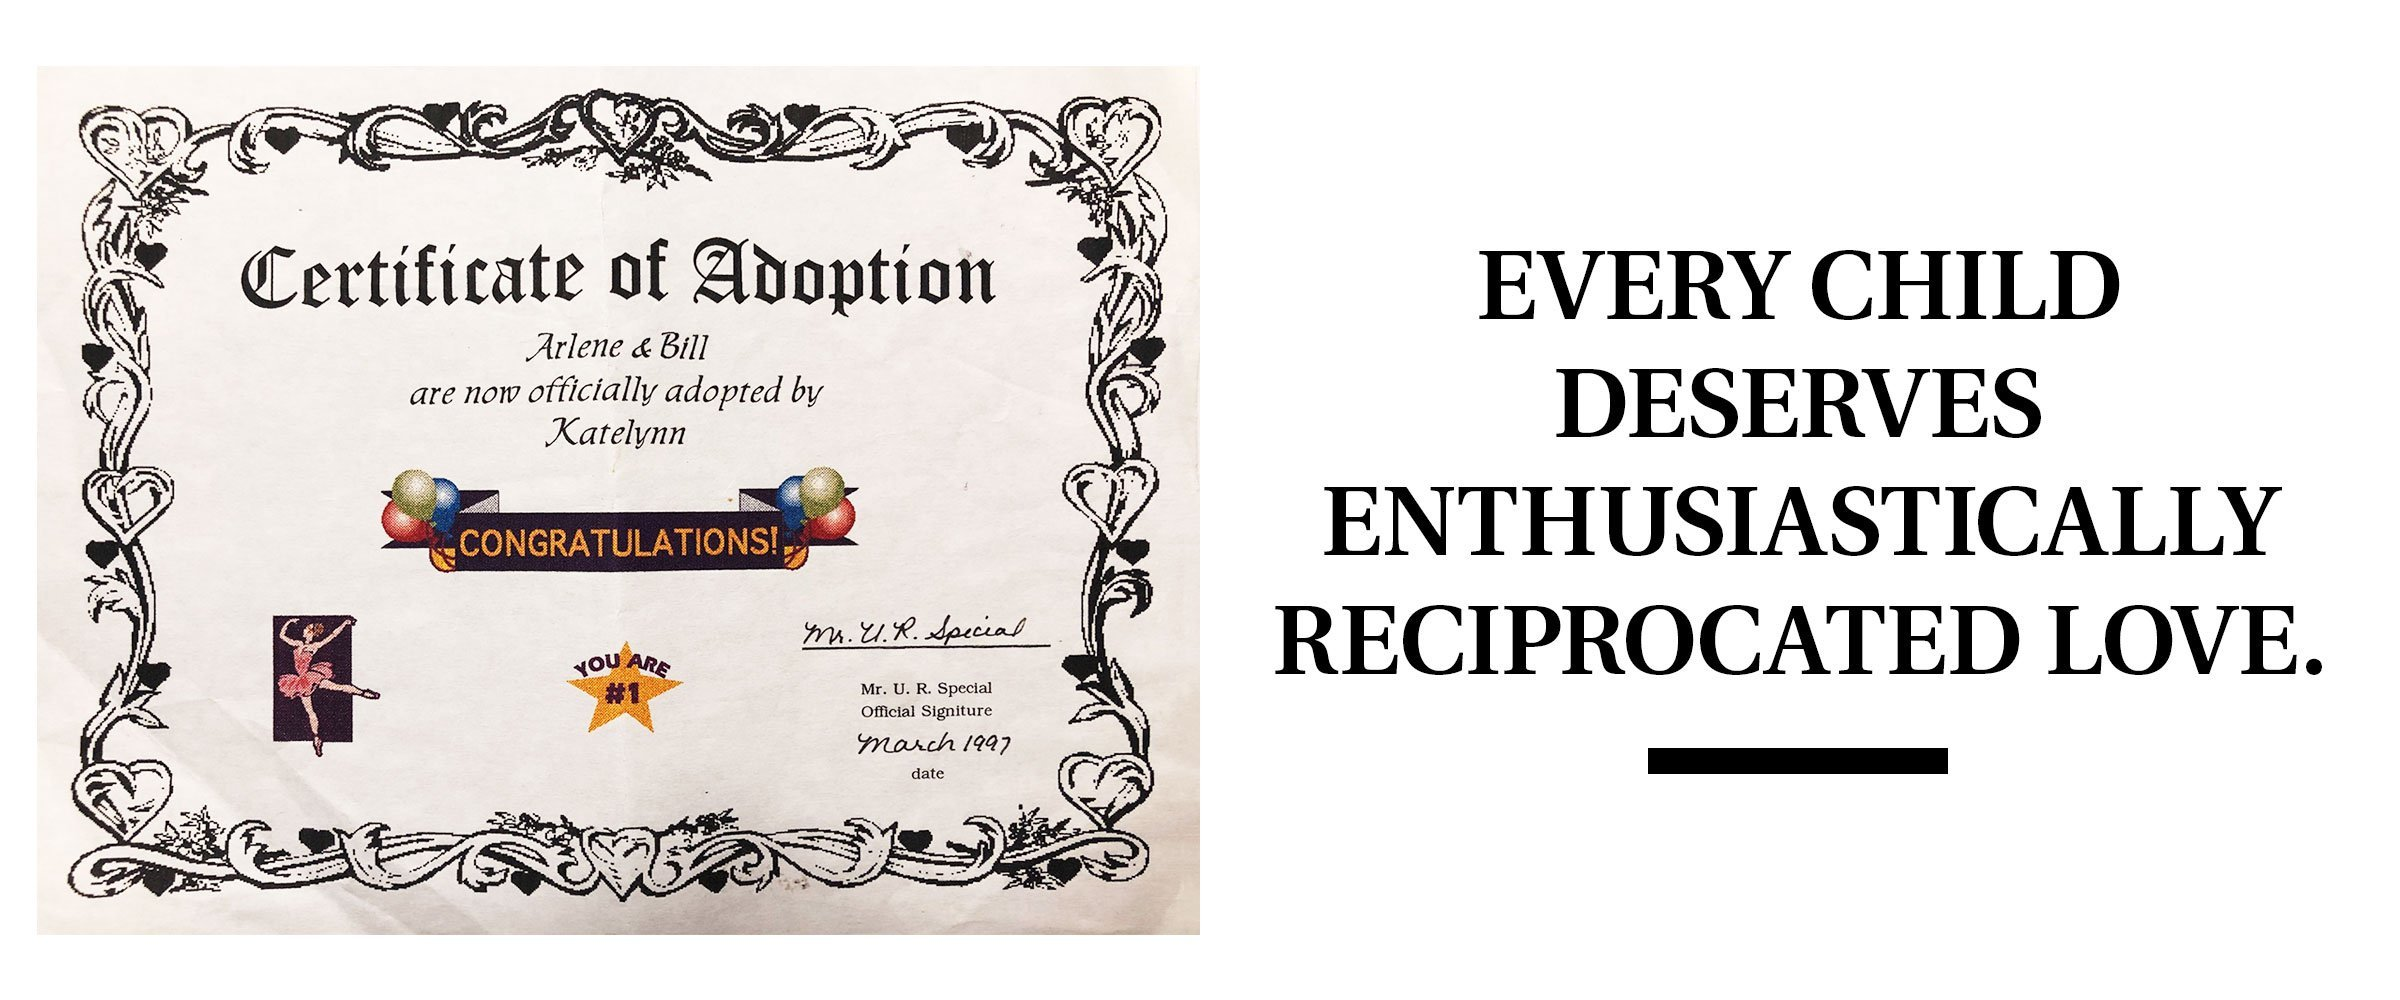 "adoption certificate and pull quote text: ""Every child deserves enthusiastically reciprocated love."""